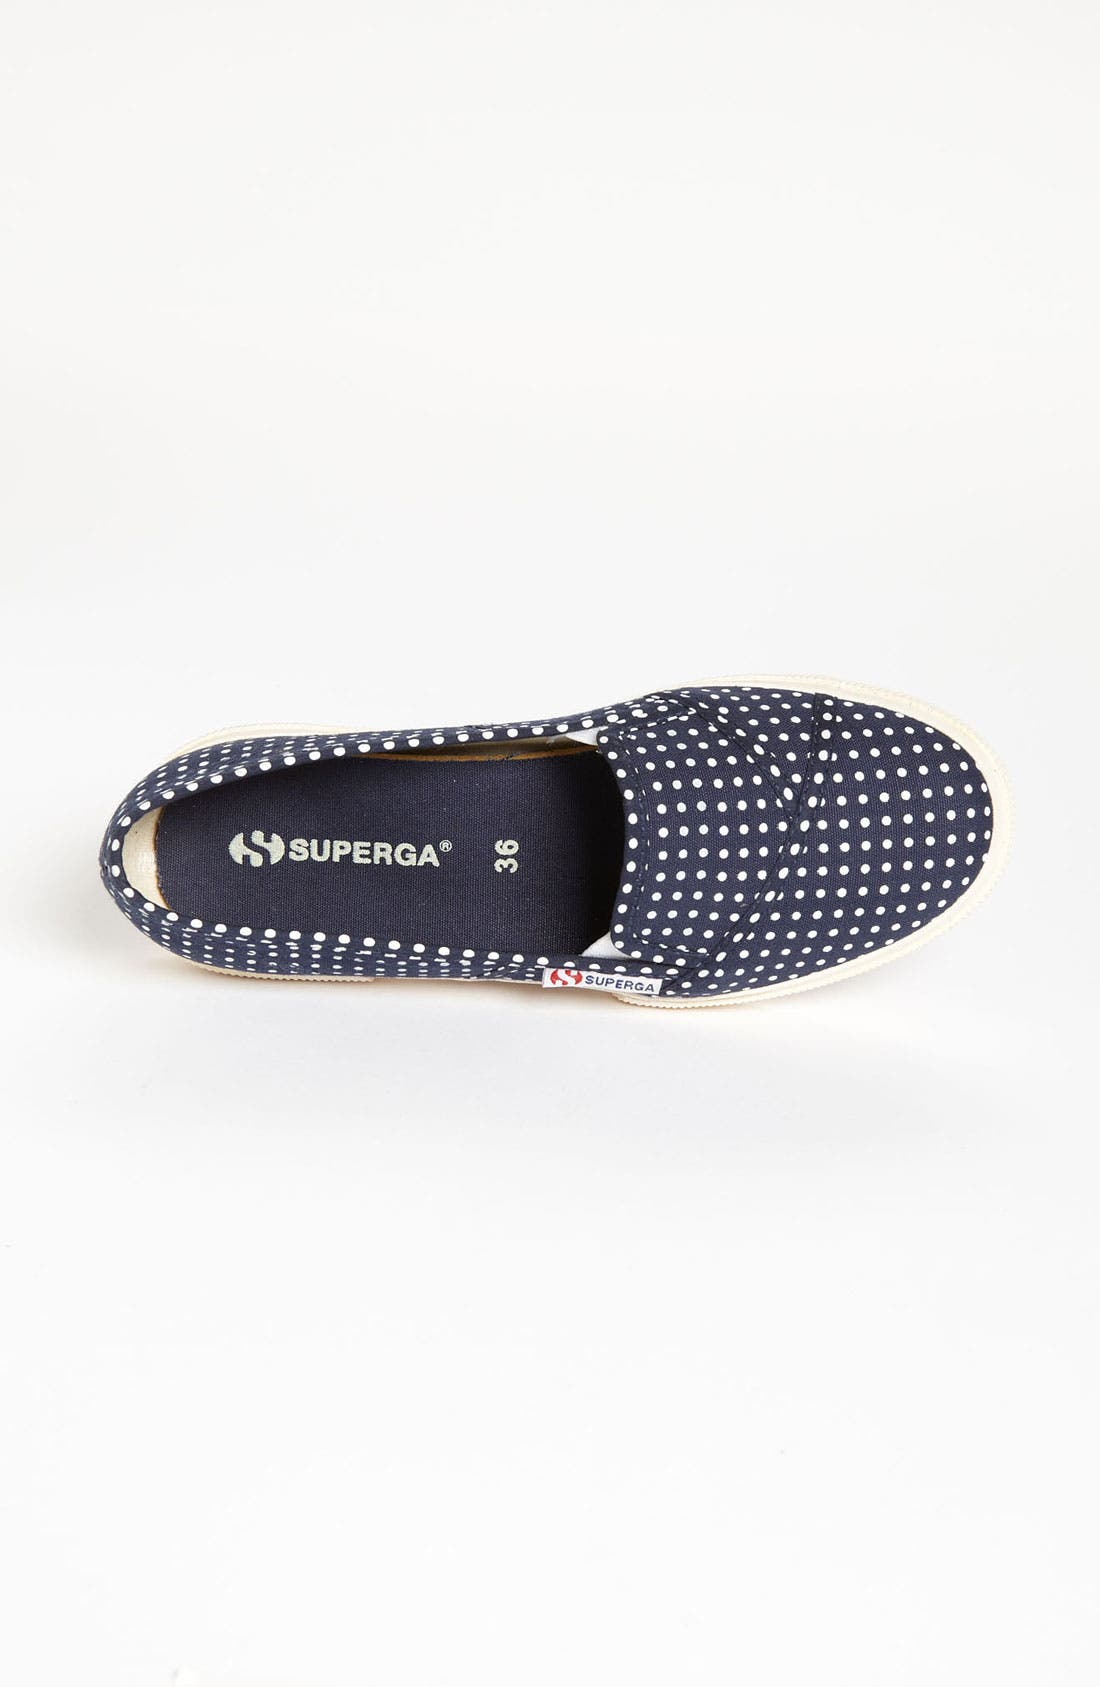 Alternate Image 3  - Superga 'A Line' Sneaker (Women)